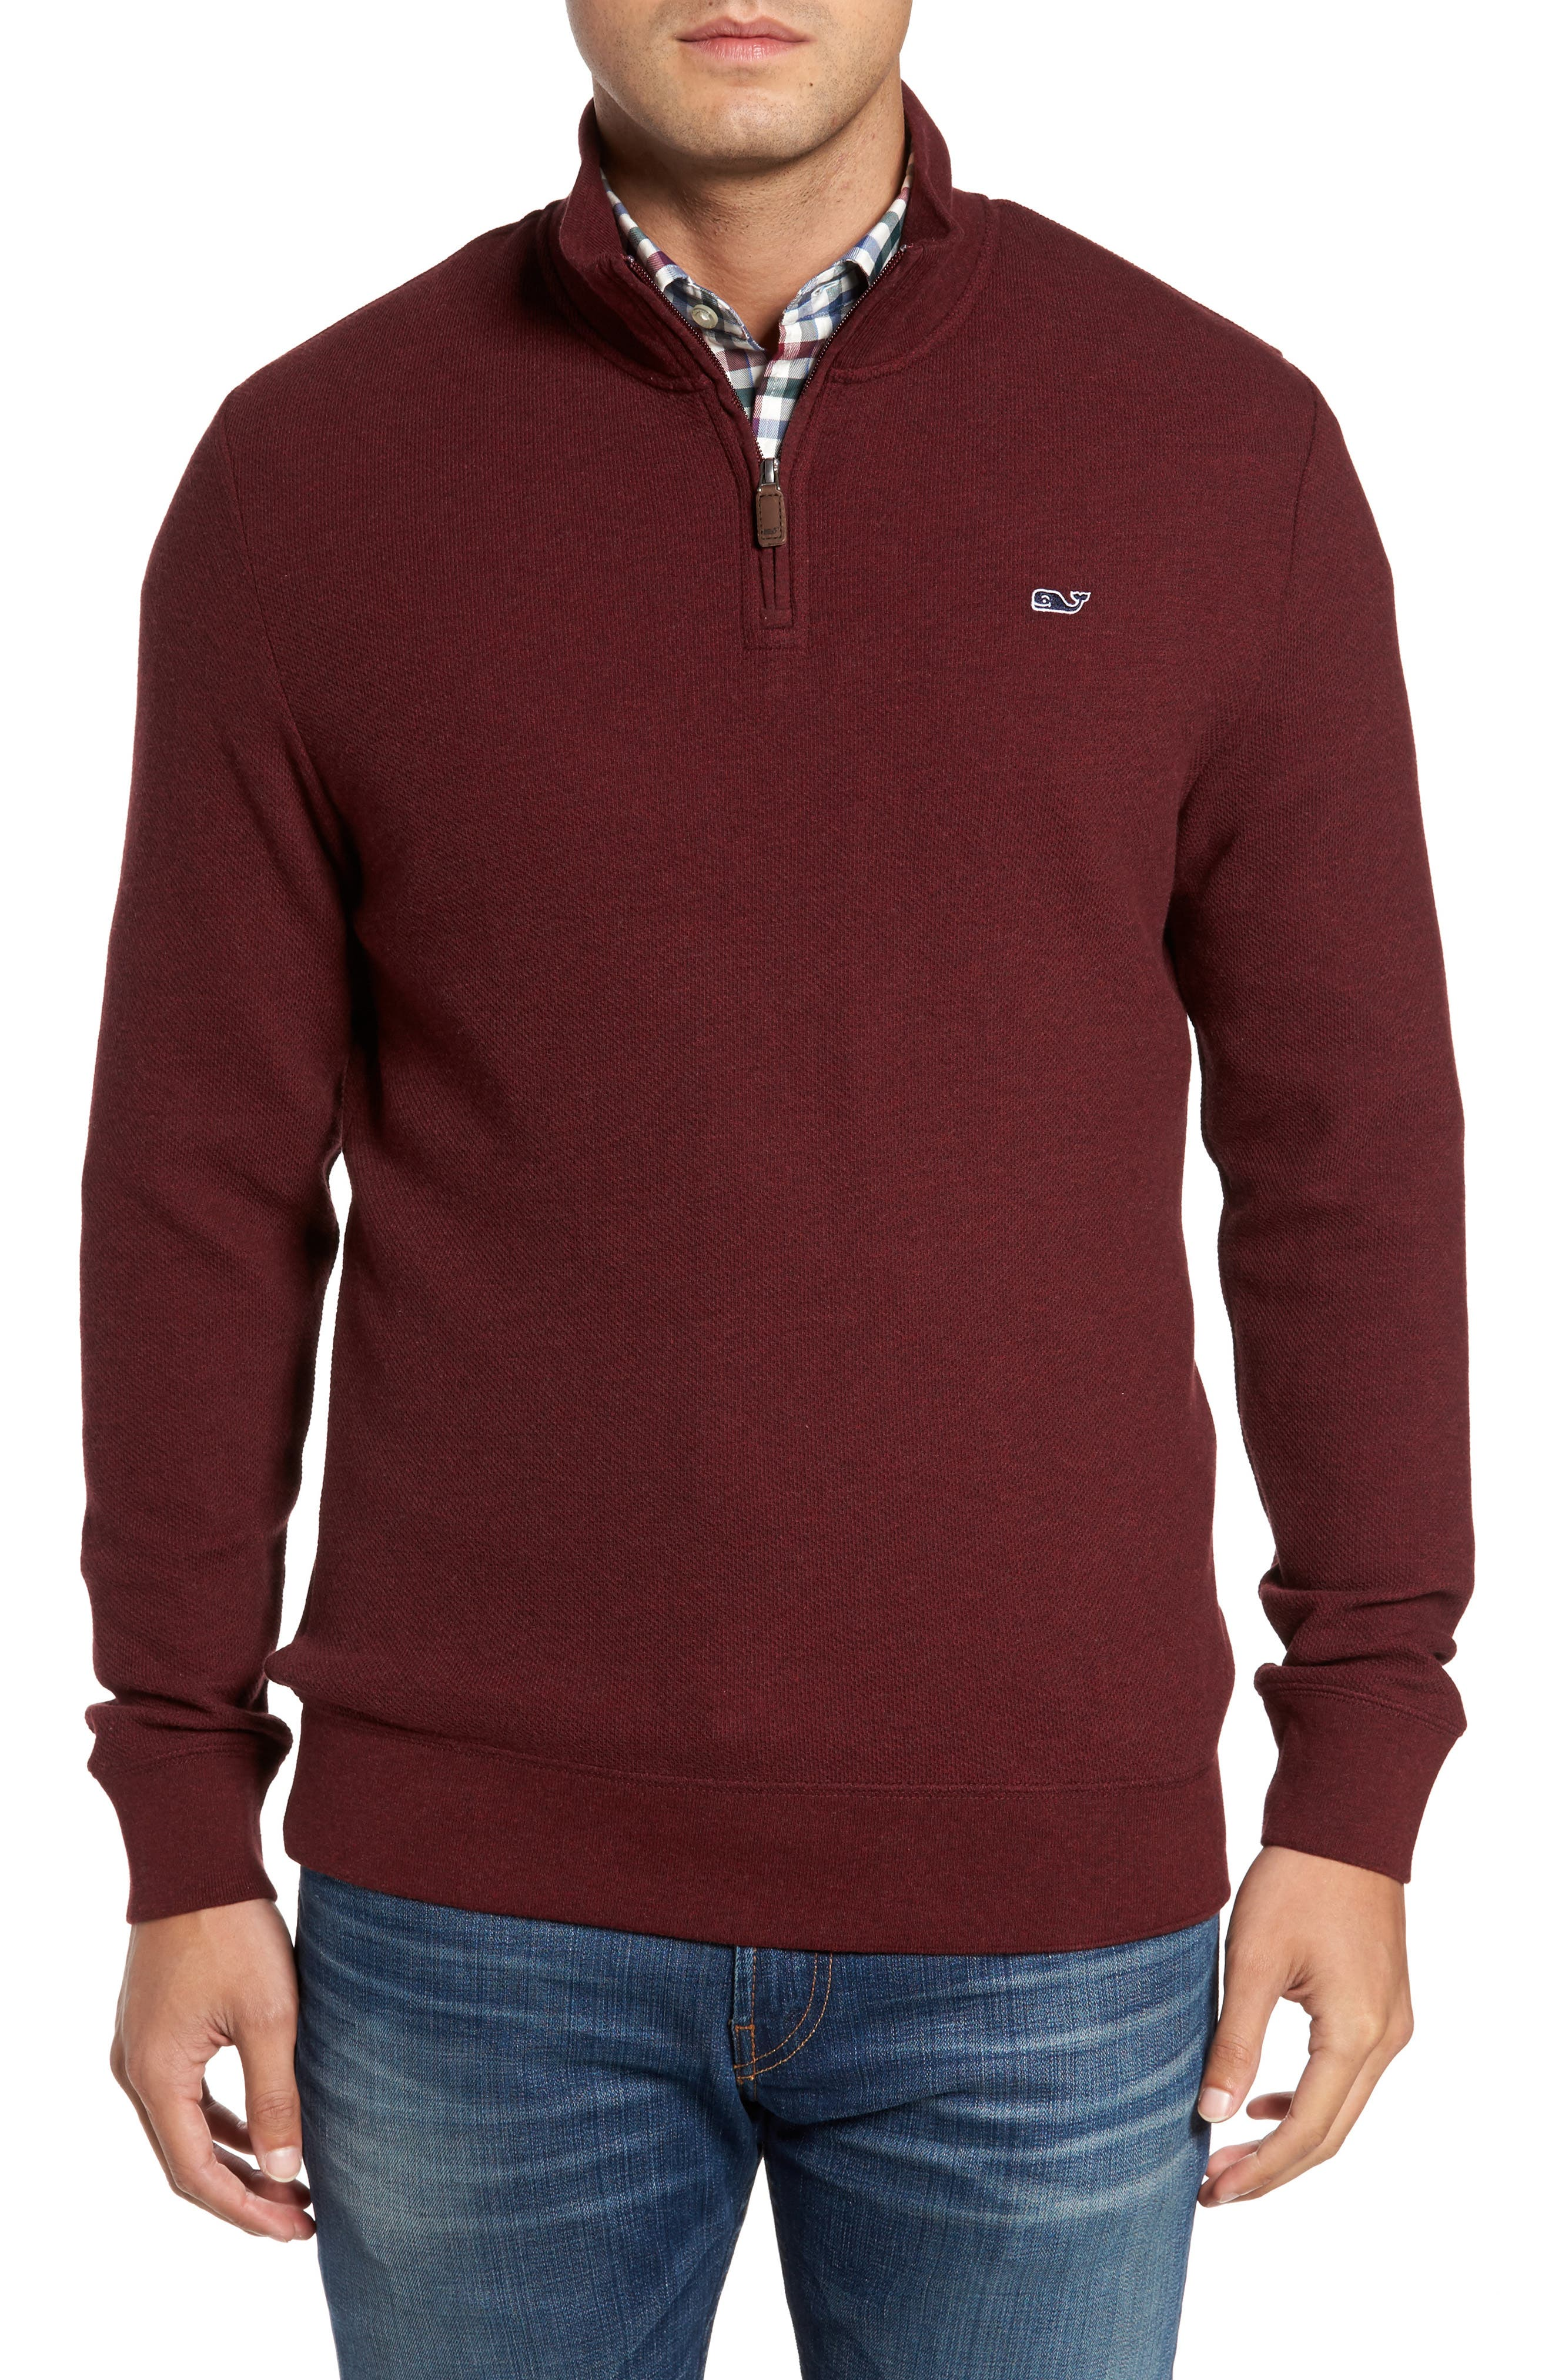 Main Image - vineyard vines Double-Knit Quarter Zip Pullover